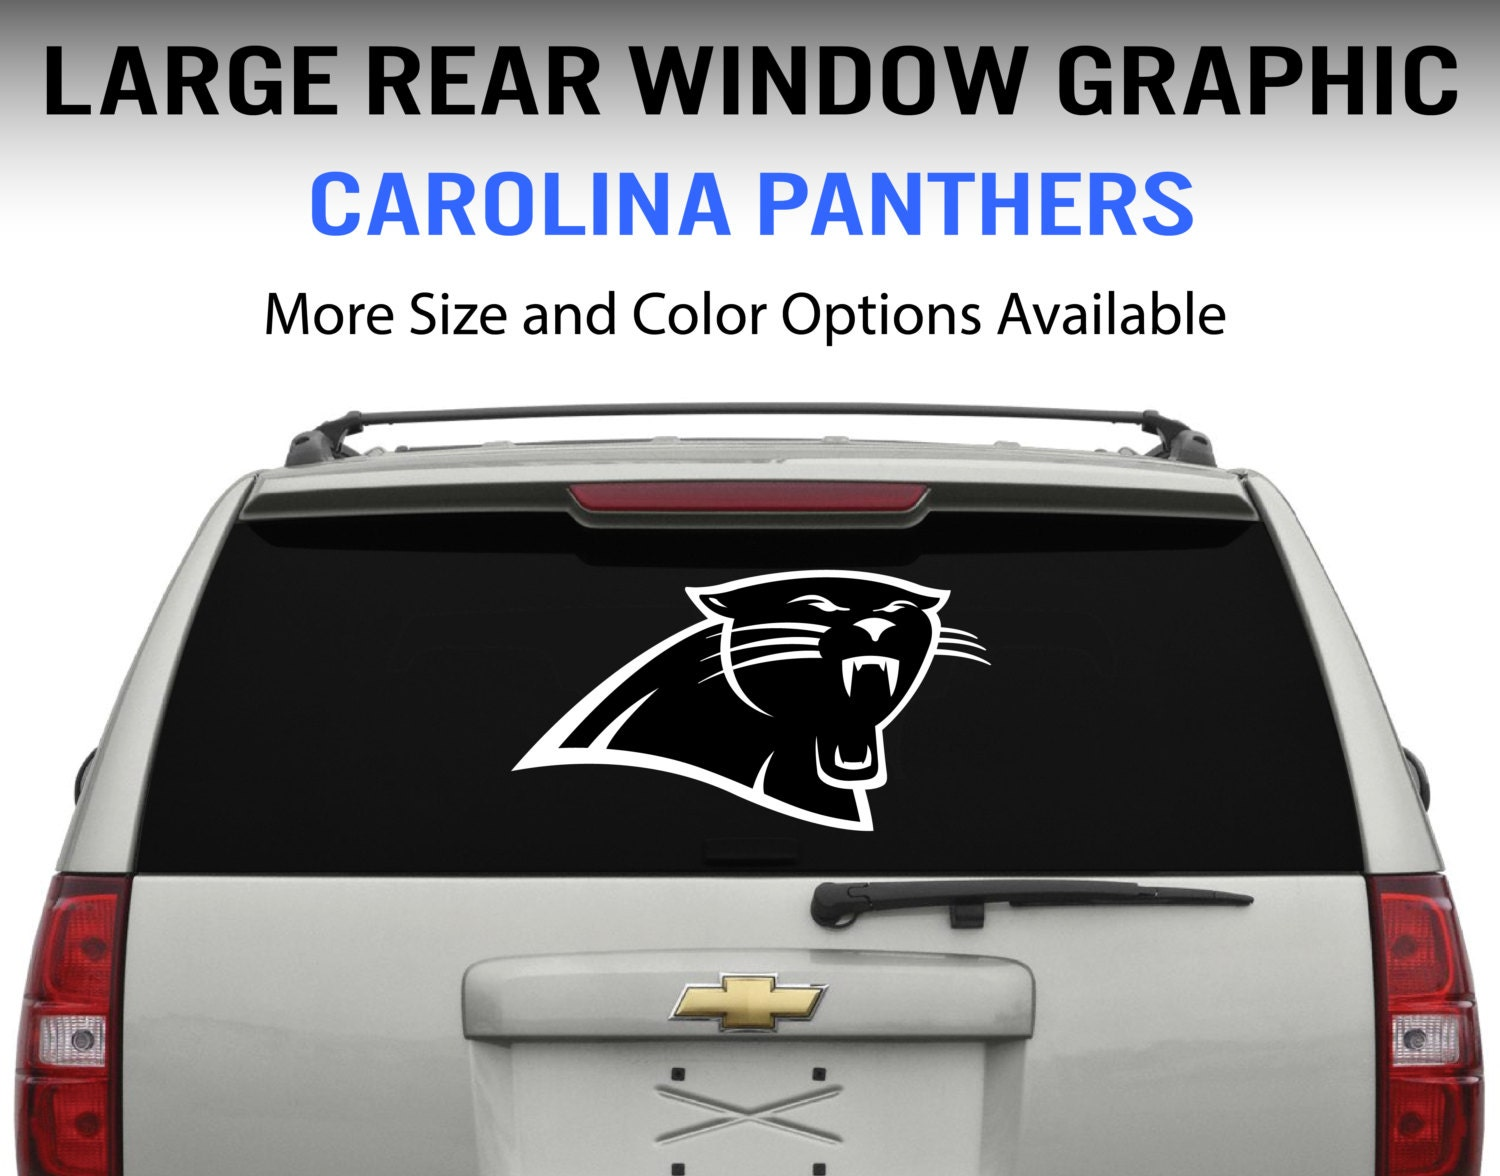 Carolina Panthers Window Decal Graphic Sticker For Truck Car - Rear window decals for cars